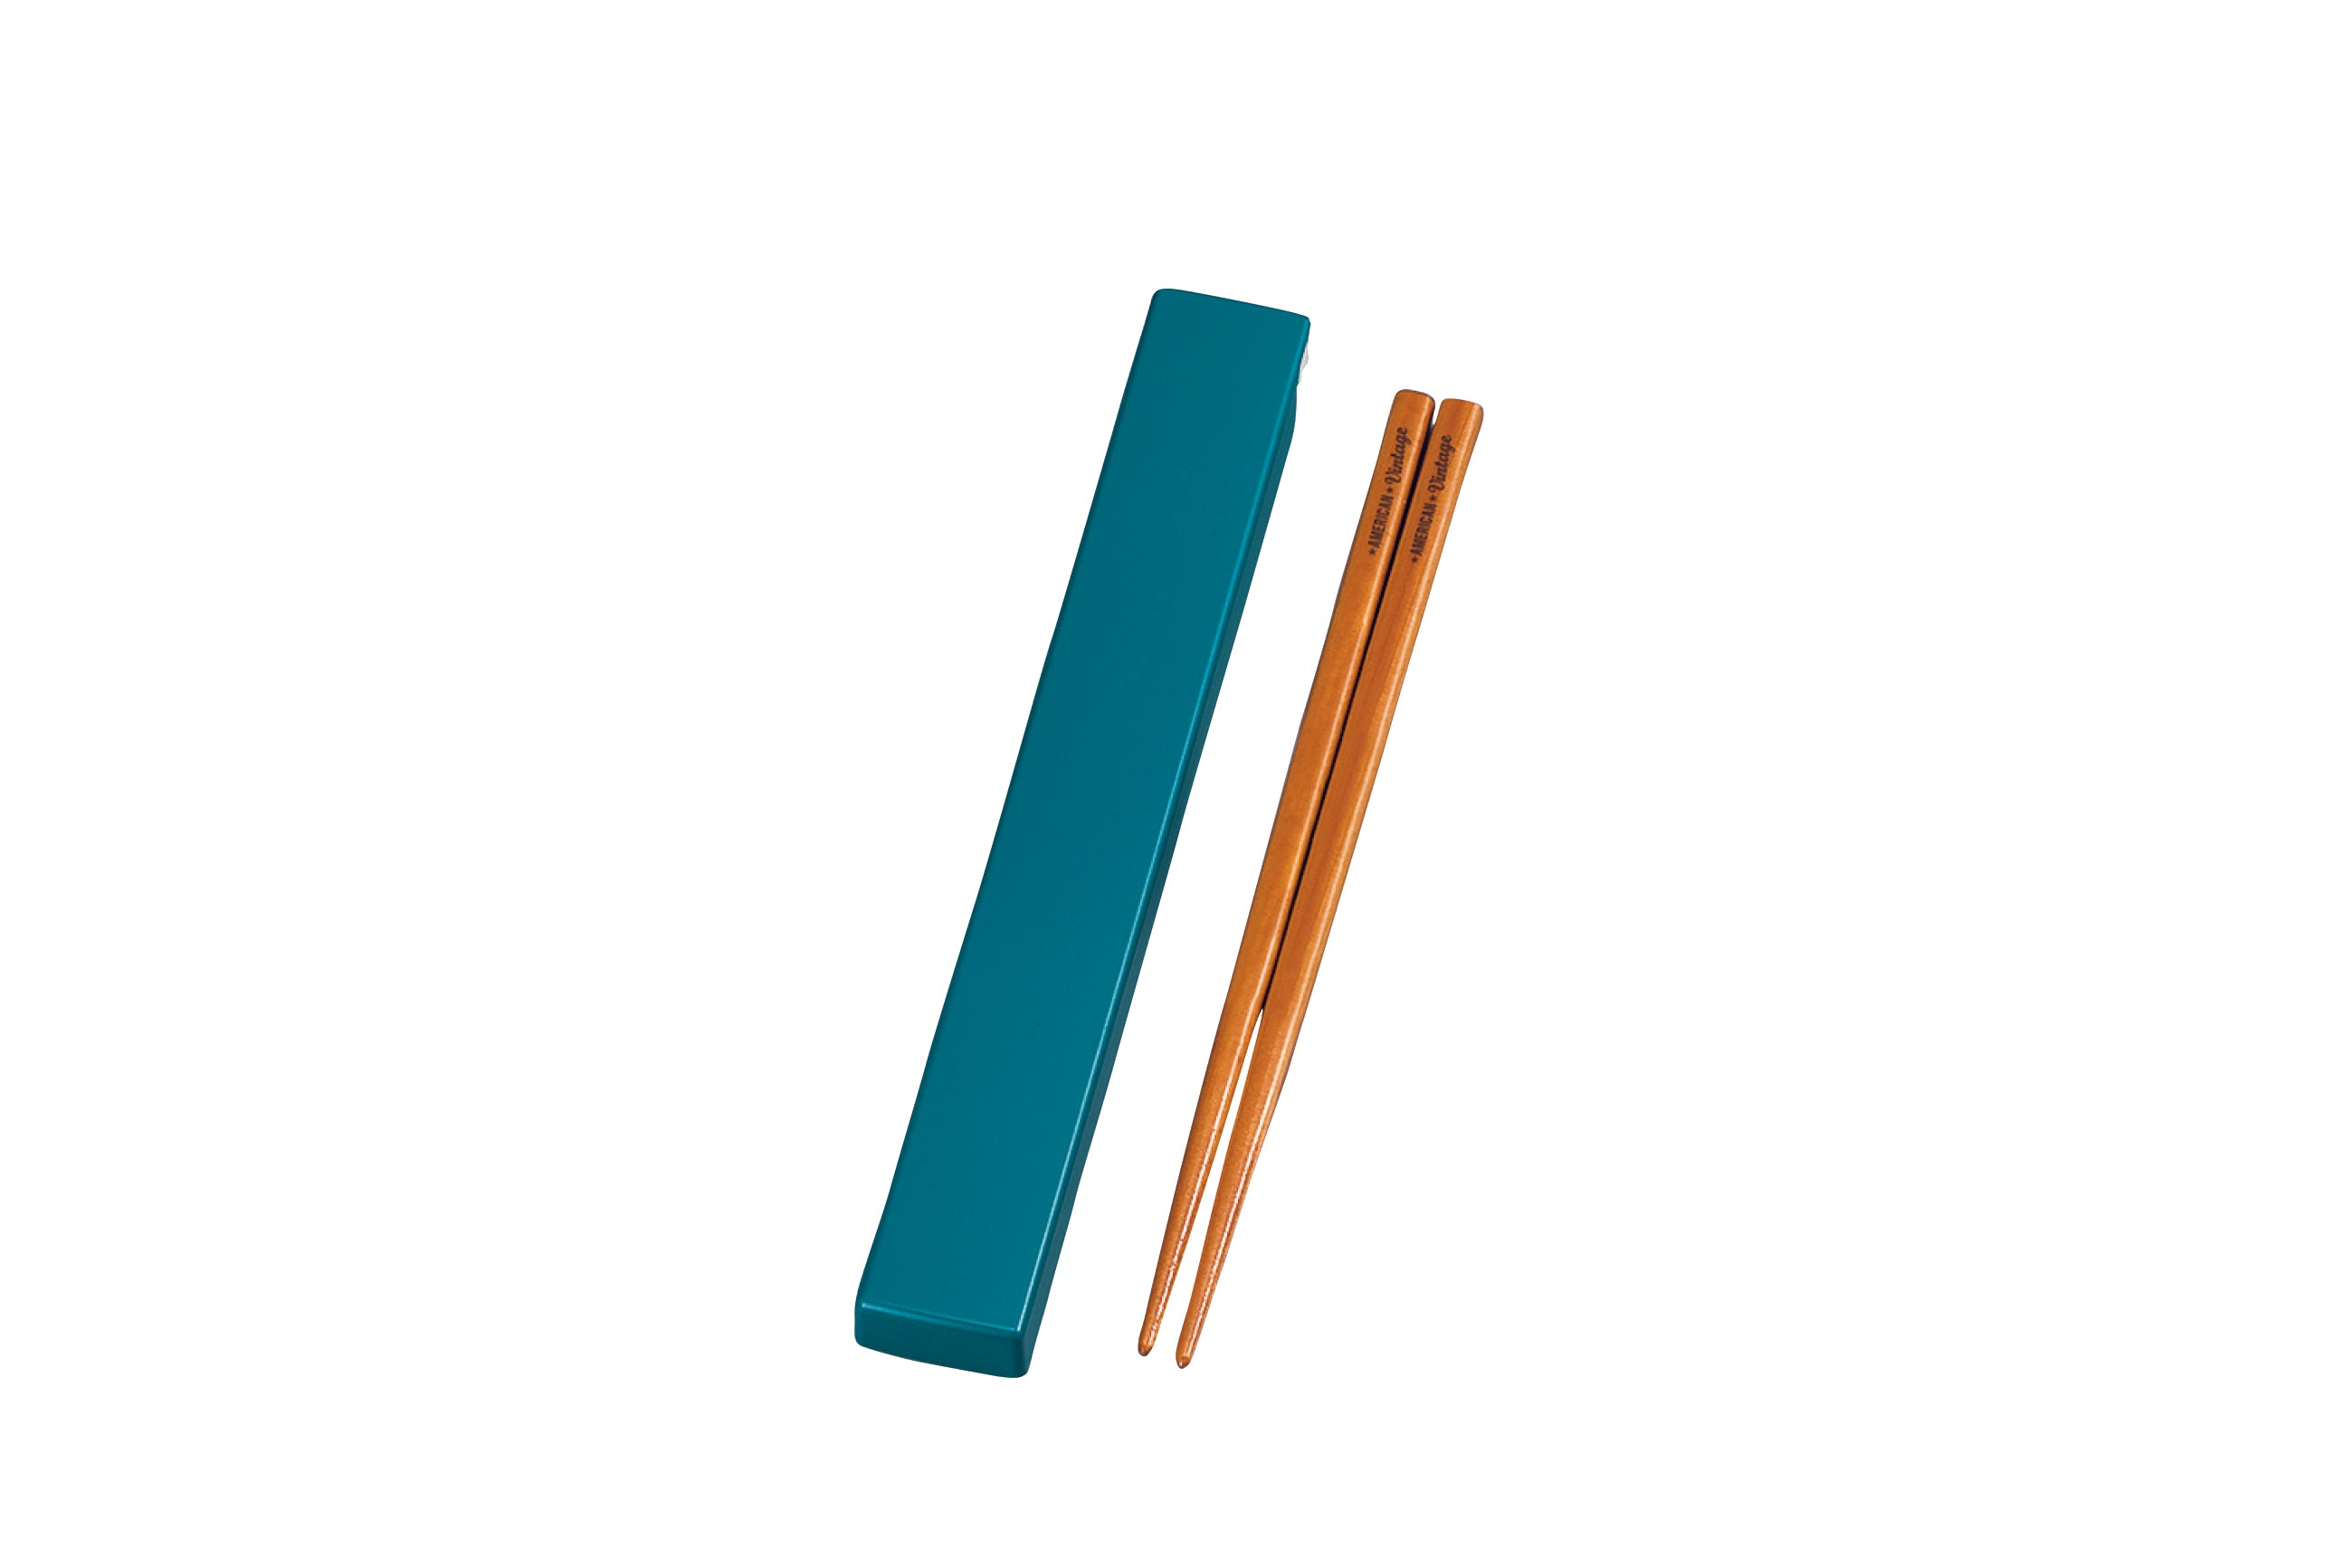 American Vintage Chopsticks Set | Green by Hakoya - Bento&co Japanese Bento Lunch Boxes and Kitchenware Specialists